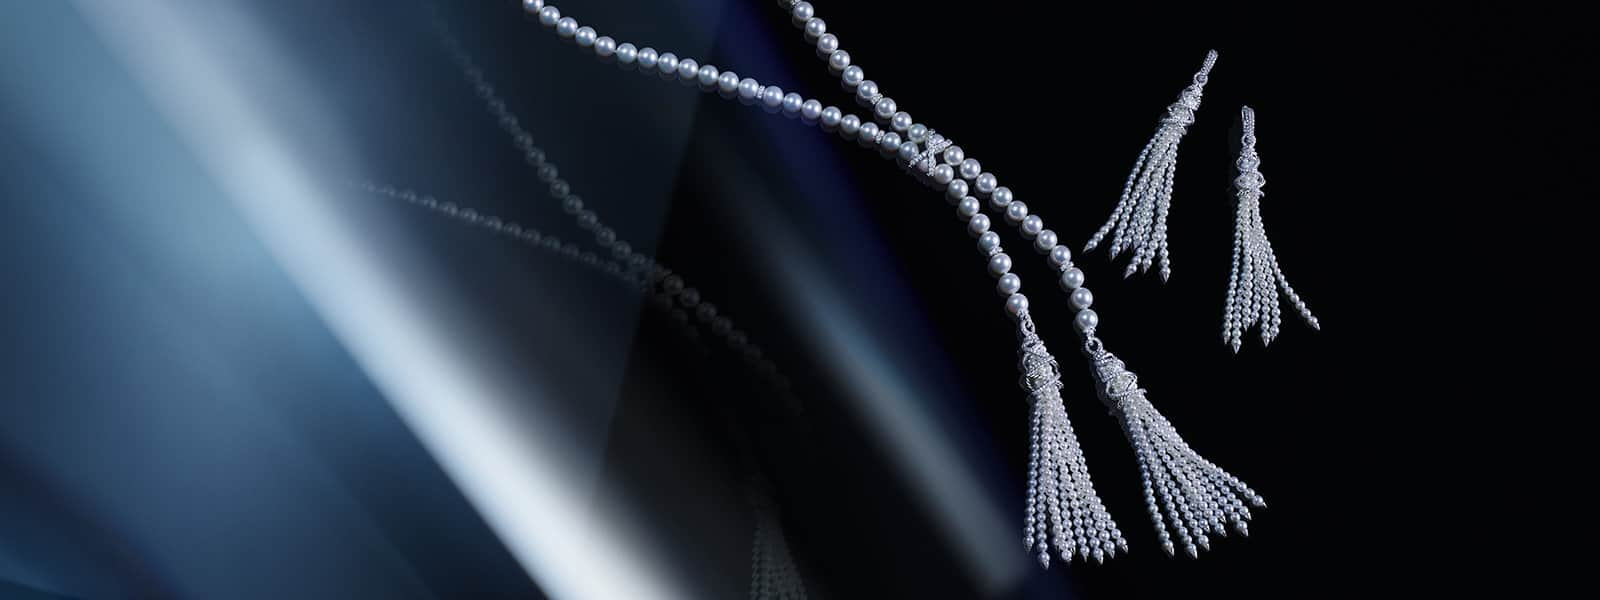 A color photograph shows a pair of David Yurman Helena tassel earrings hanging next to a matching necklace, all in front of a reflective background with angular, multi-colored reflections of light and jewelry. The jewelry is crafted from cultured Akoya pearls in 18K white gold with pavé white diamond accents.